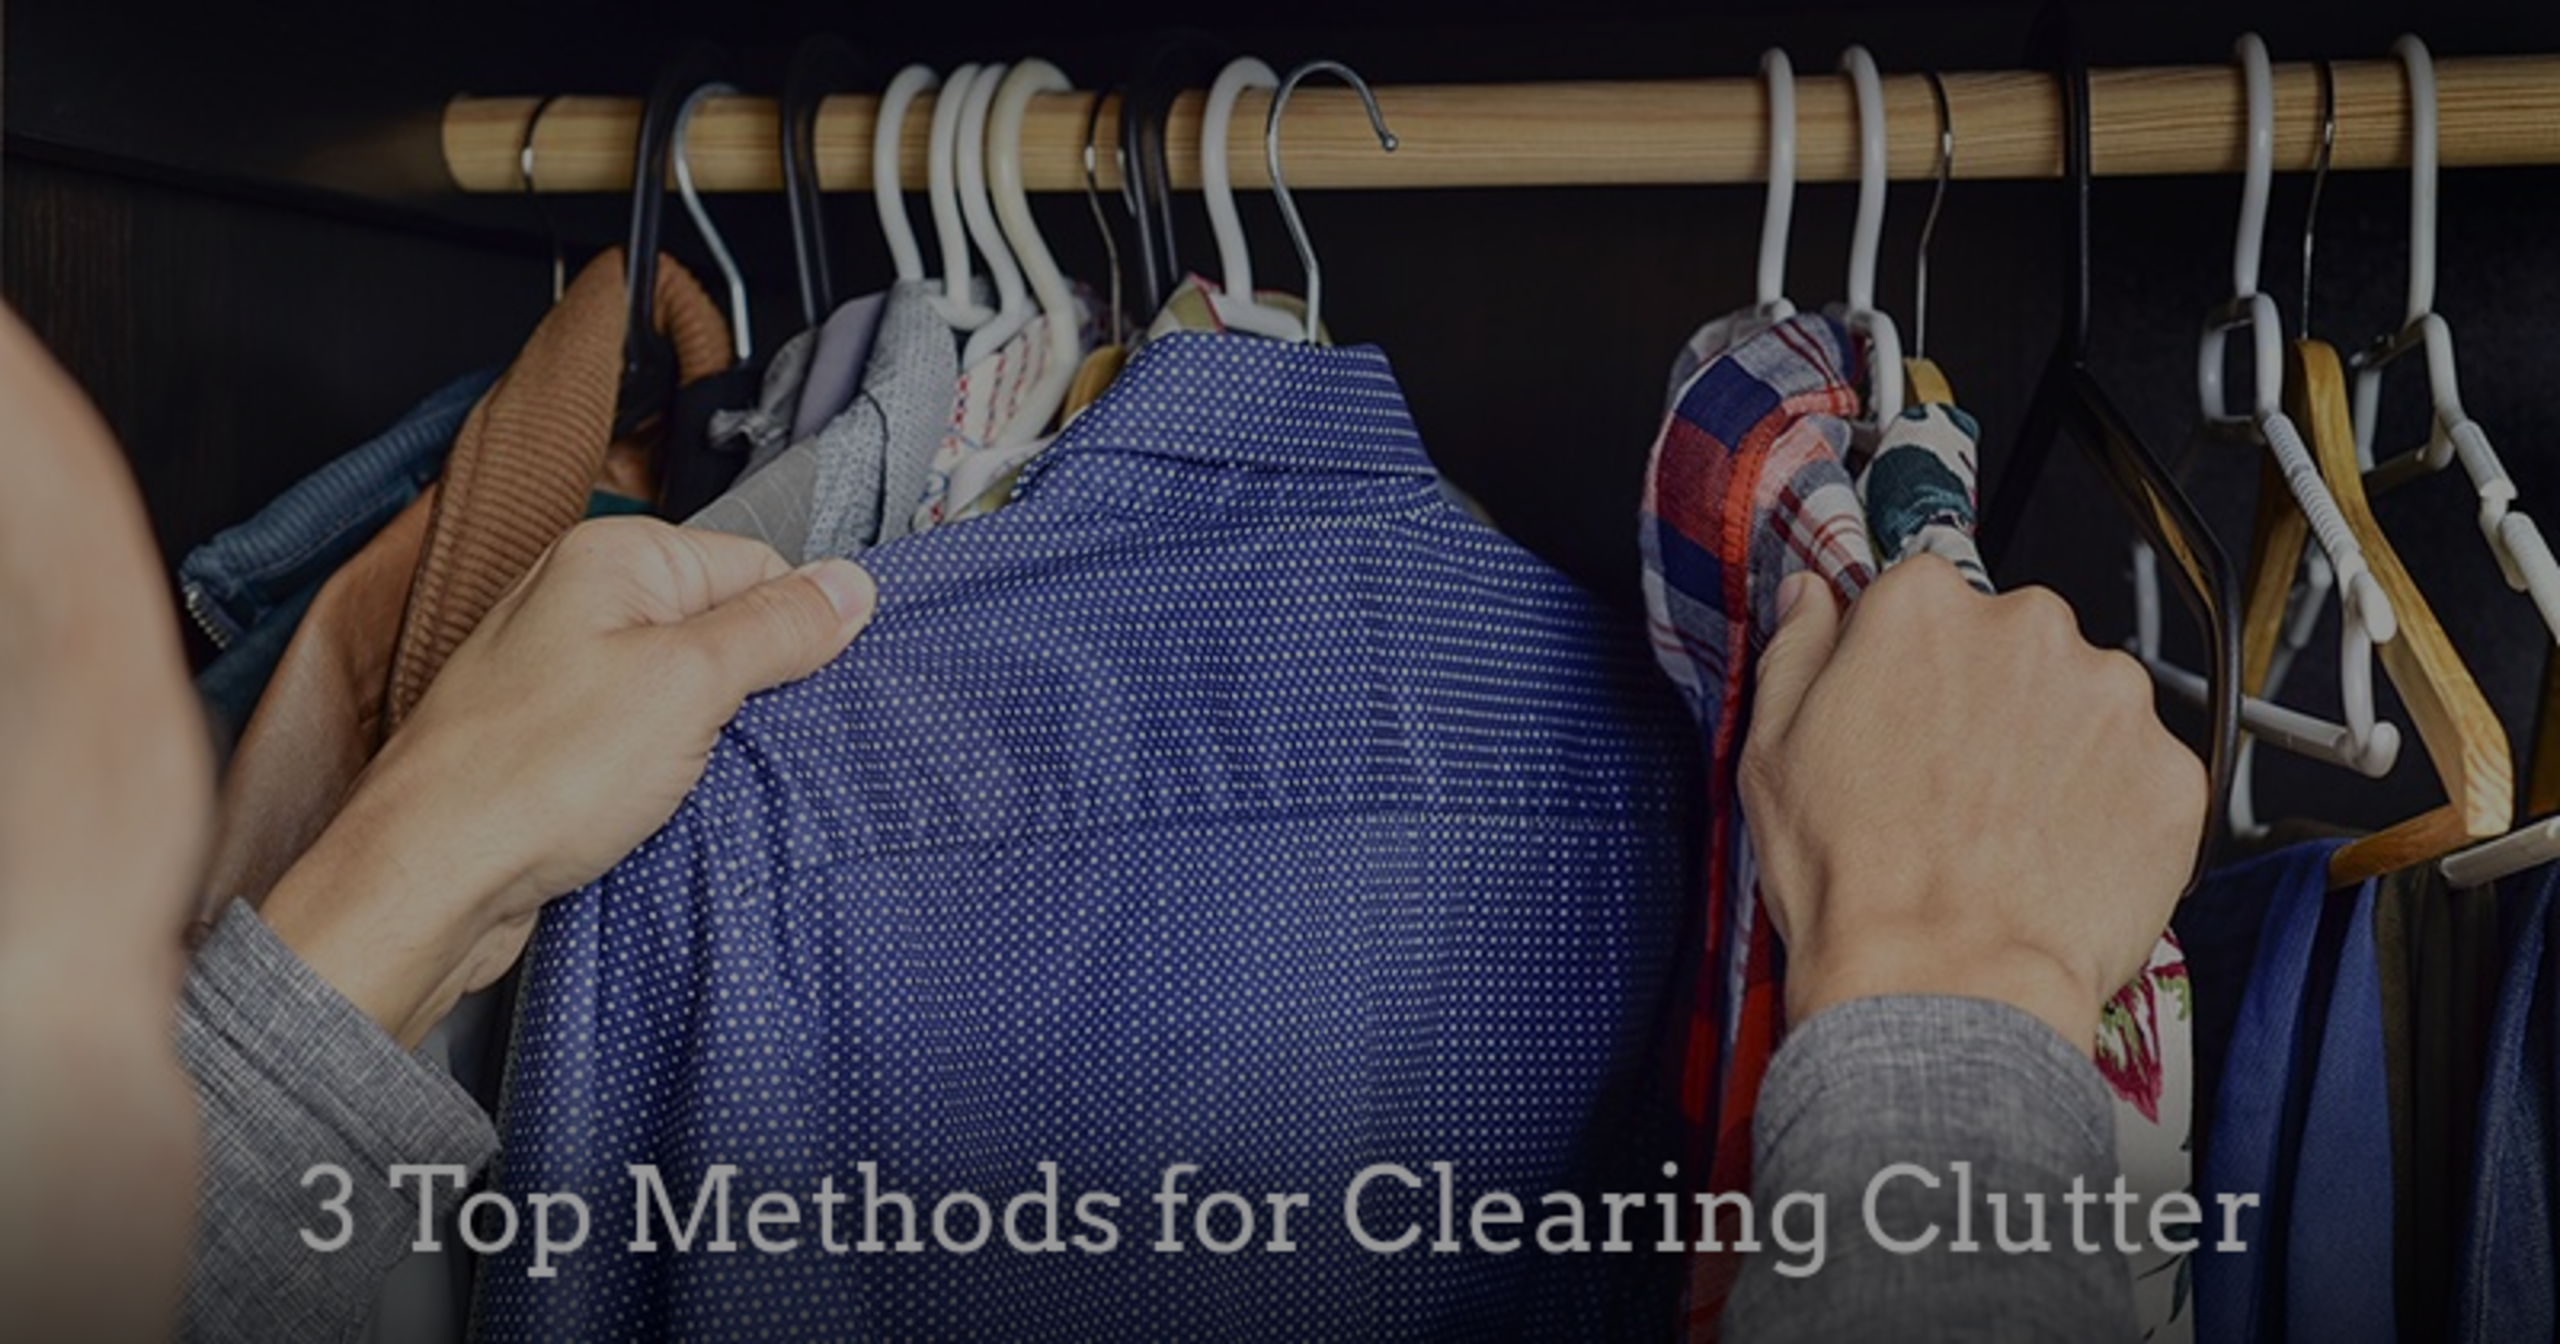 3 Top Methods for Clearing Clutter